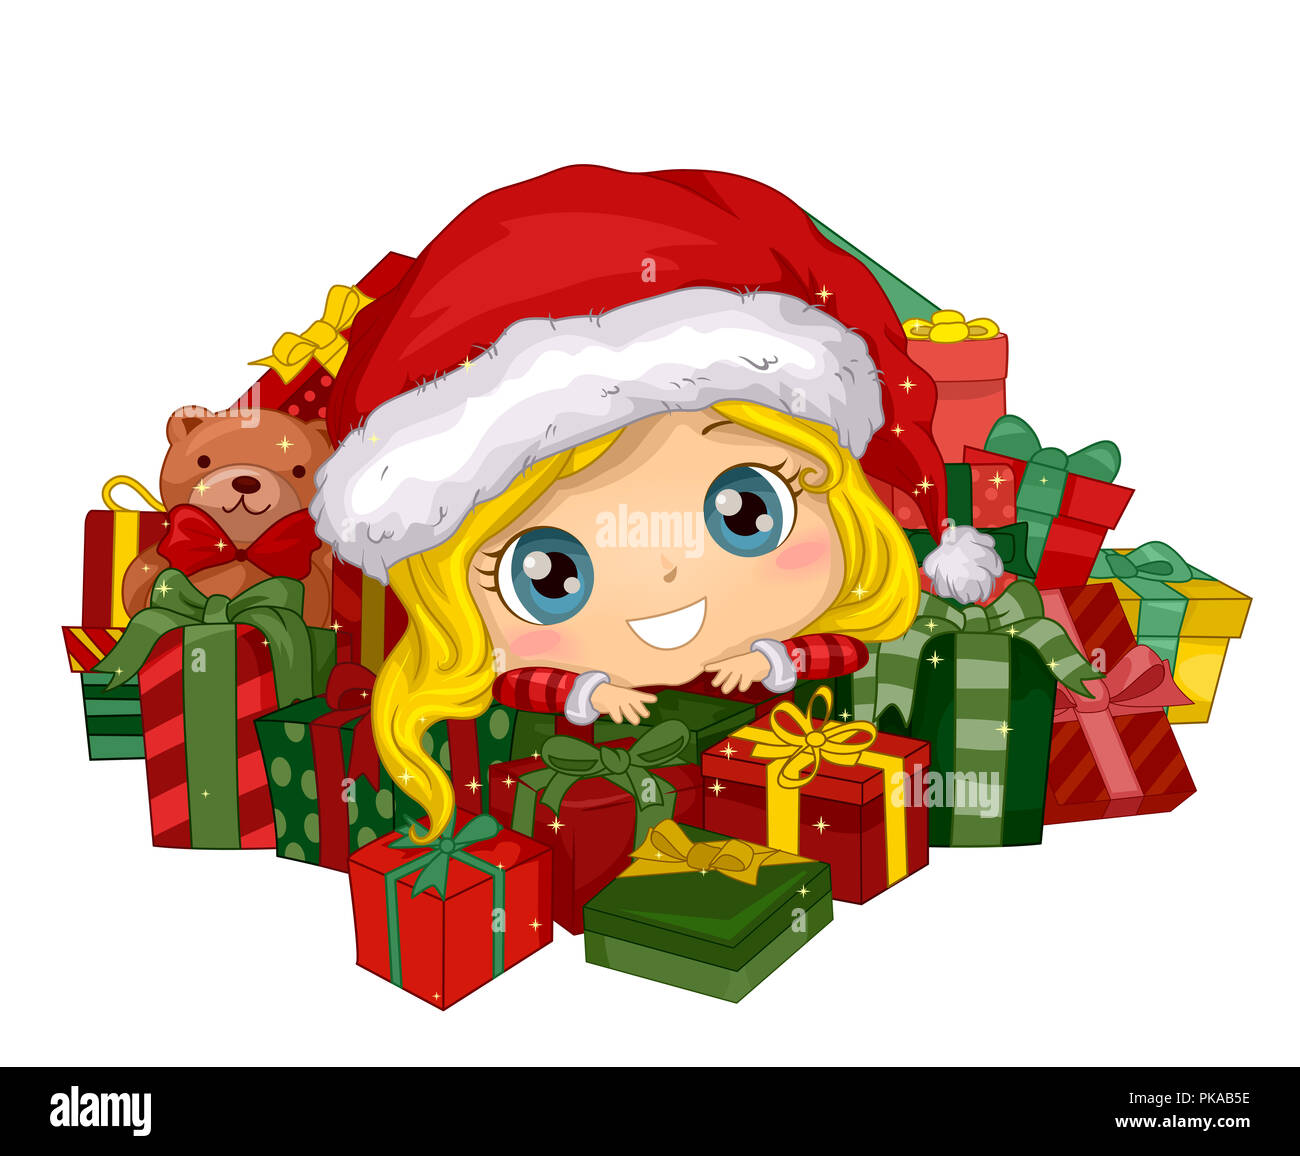 aeb443e9a5519 Illustration of a Kid Girl Wearing Santa Hat Sitting Among a Pile of Gifts  and a Teddy Bear